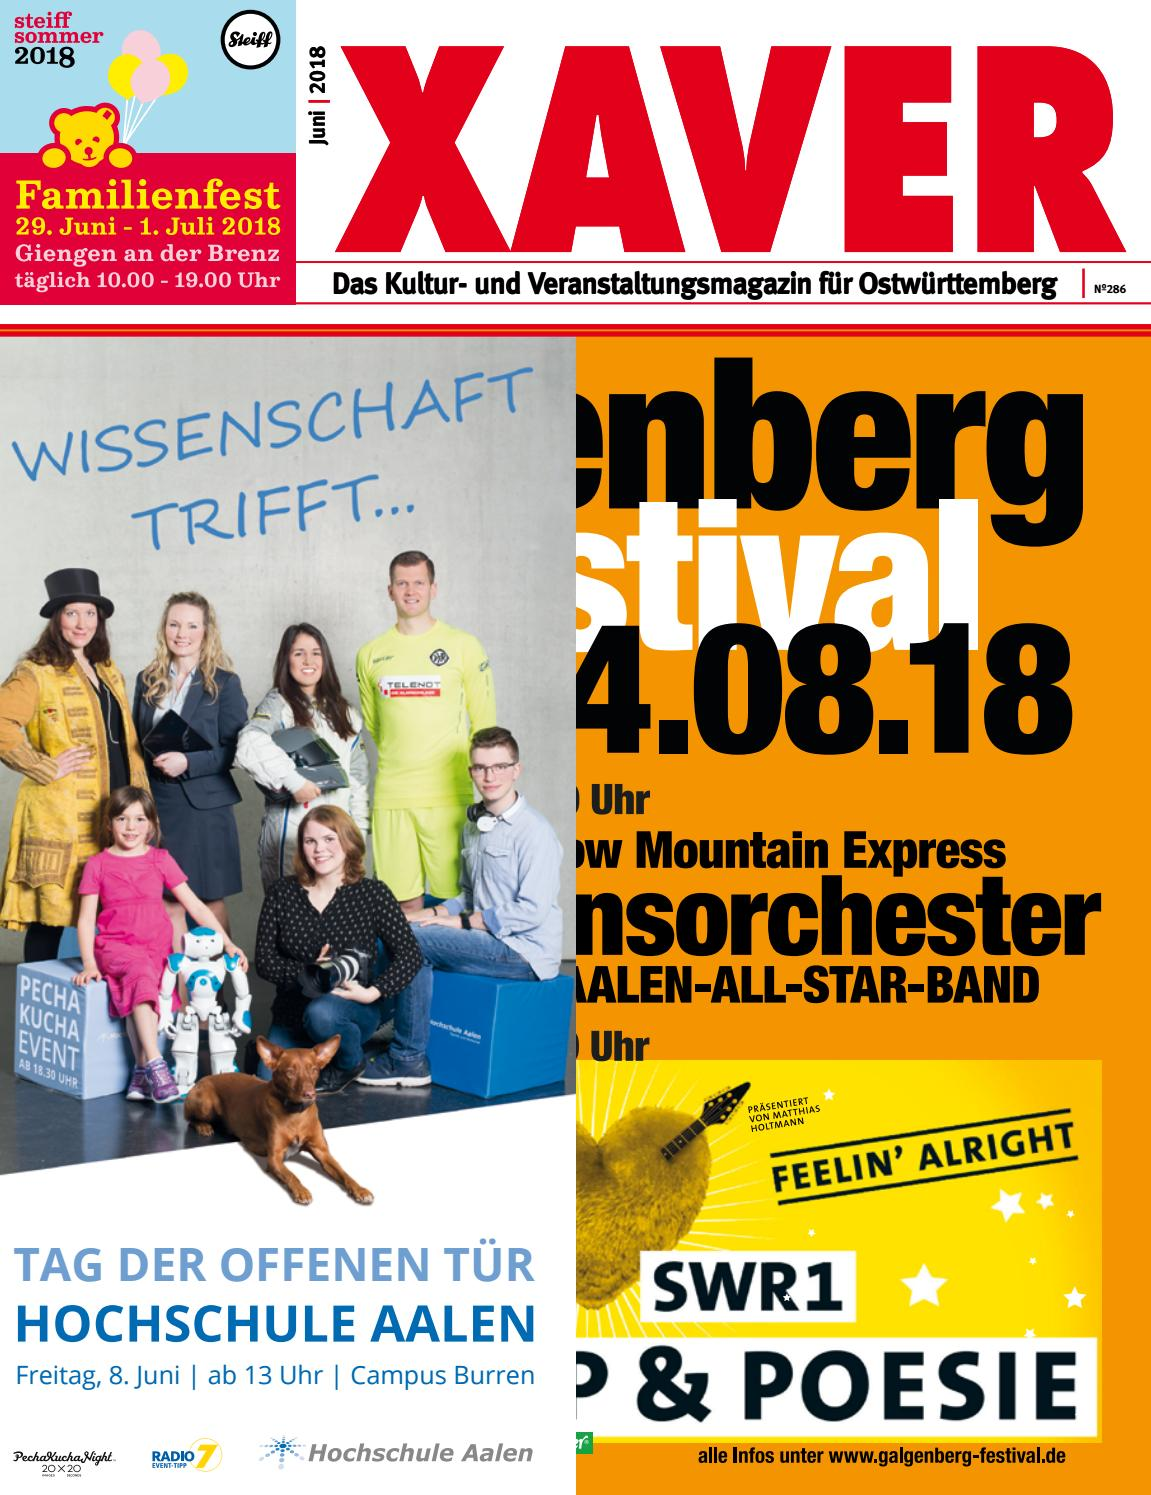 5b975b309bb3b XAVER 06|2018 by Hariolf Erhardt - issuu